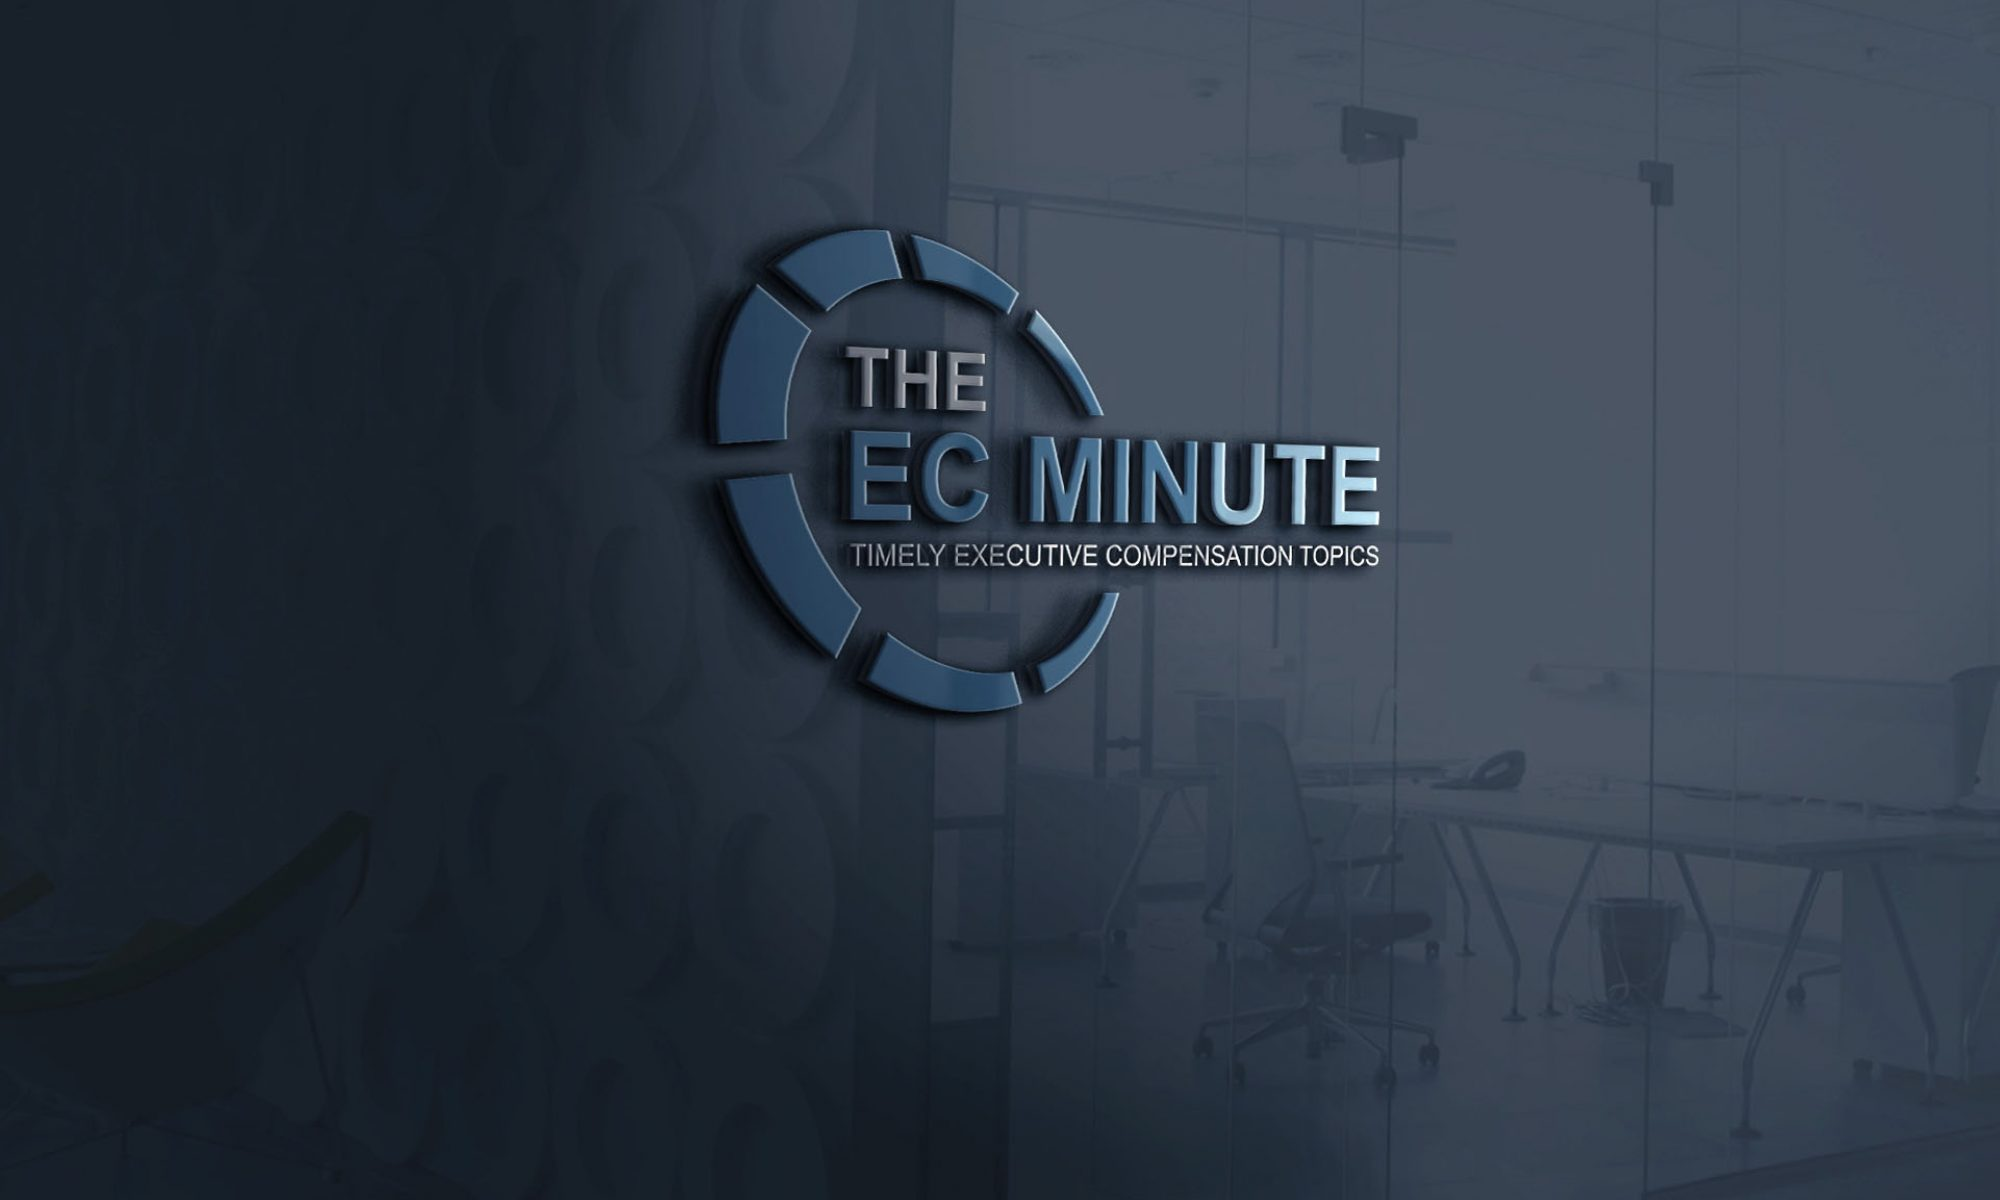 The EC Minute